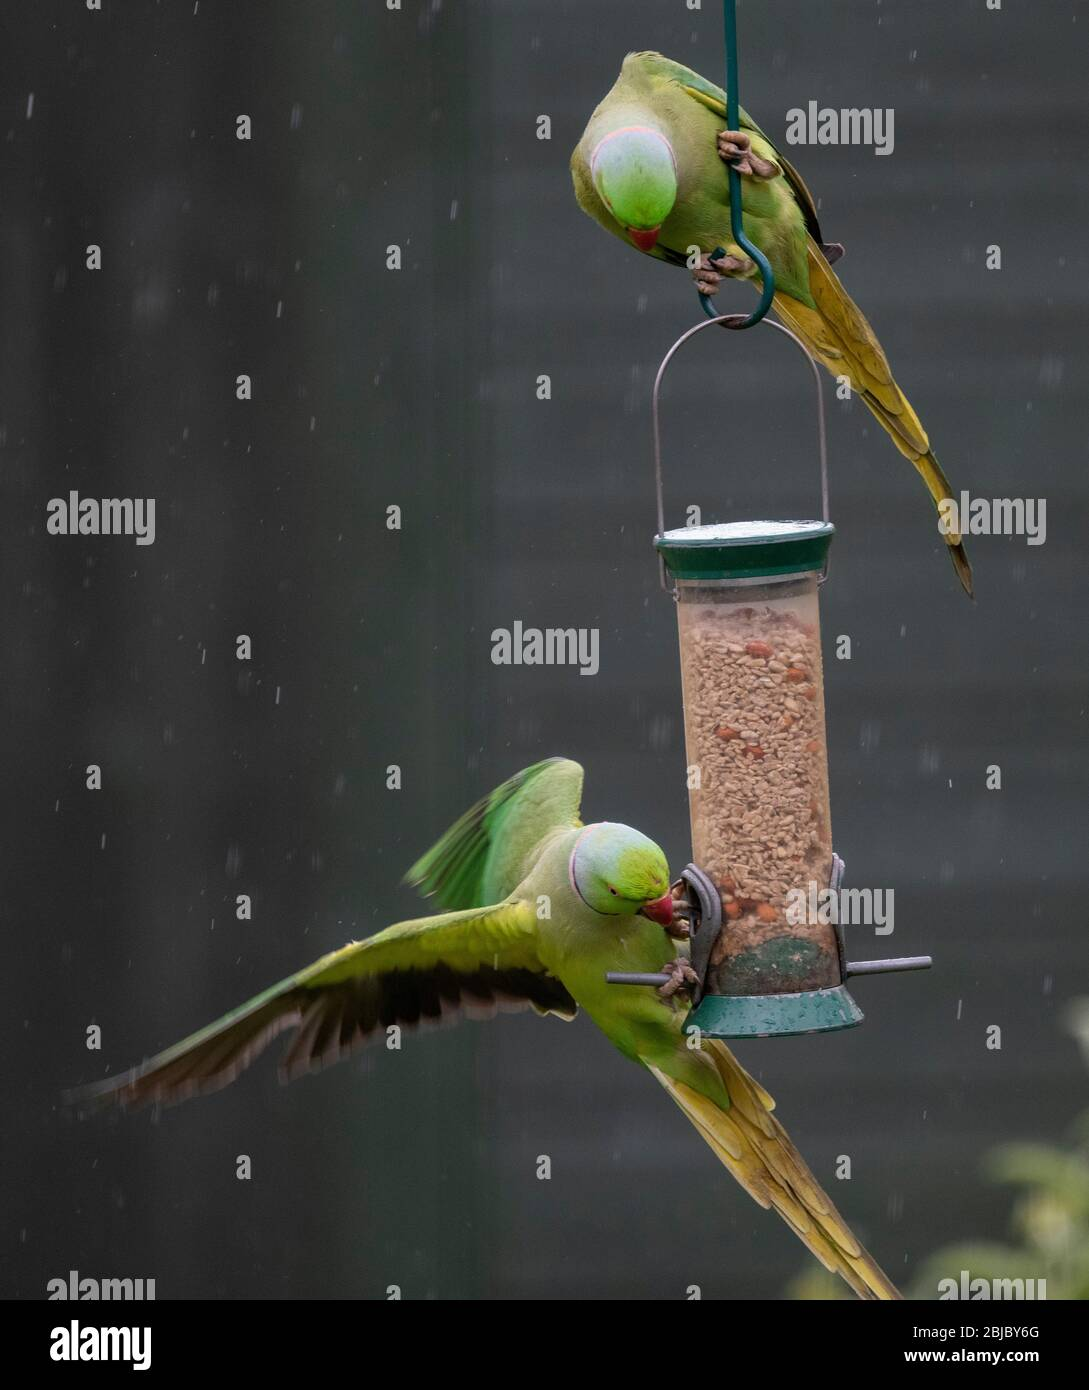 Ring Necked Parakeets feed in a rain shower on a hanging garden bird feeder, London, UK Stock Photo